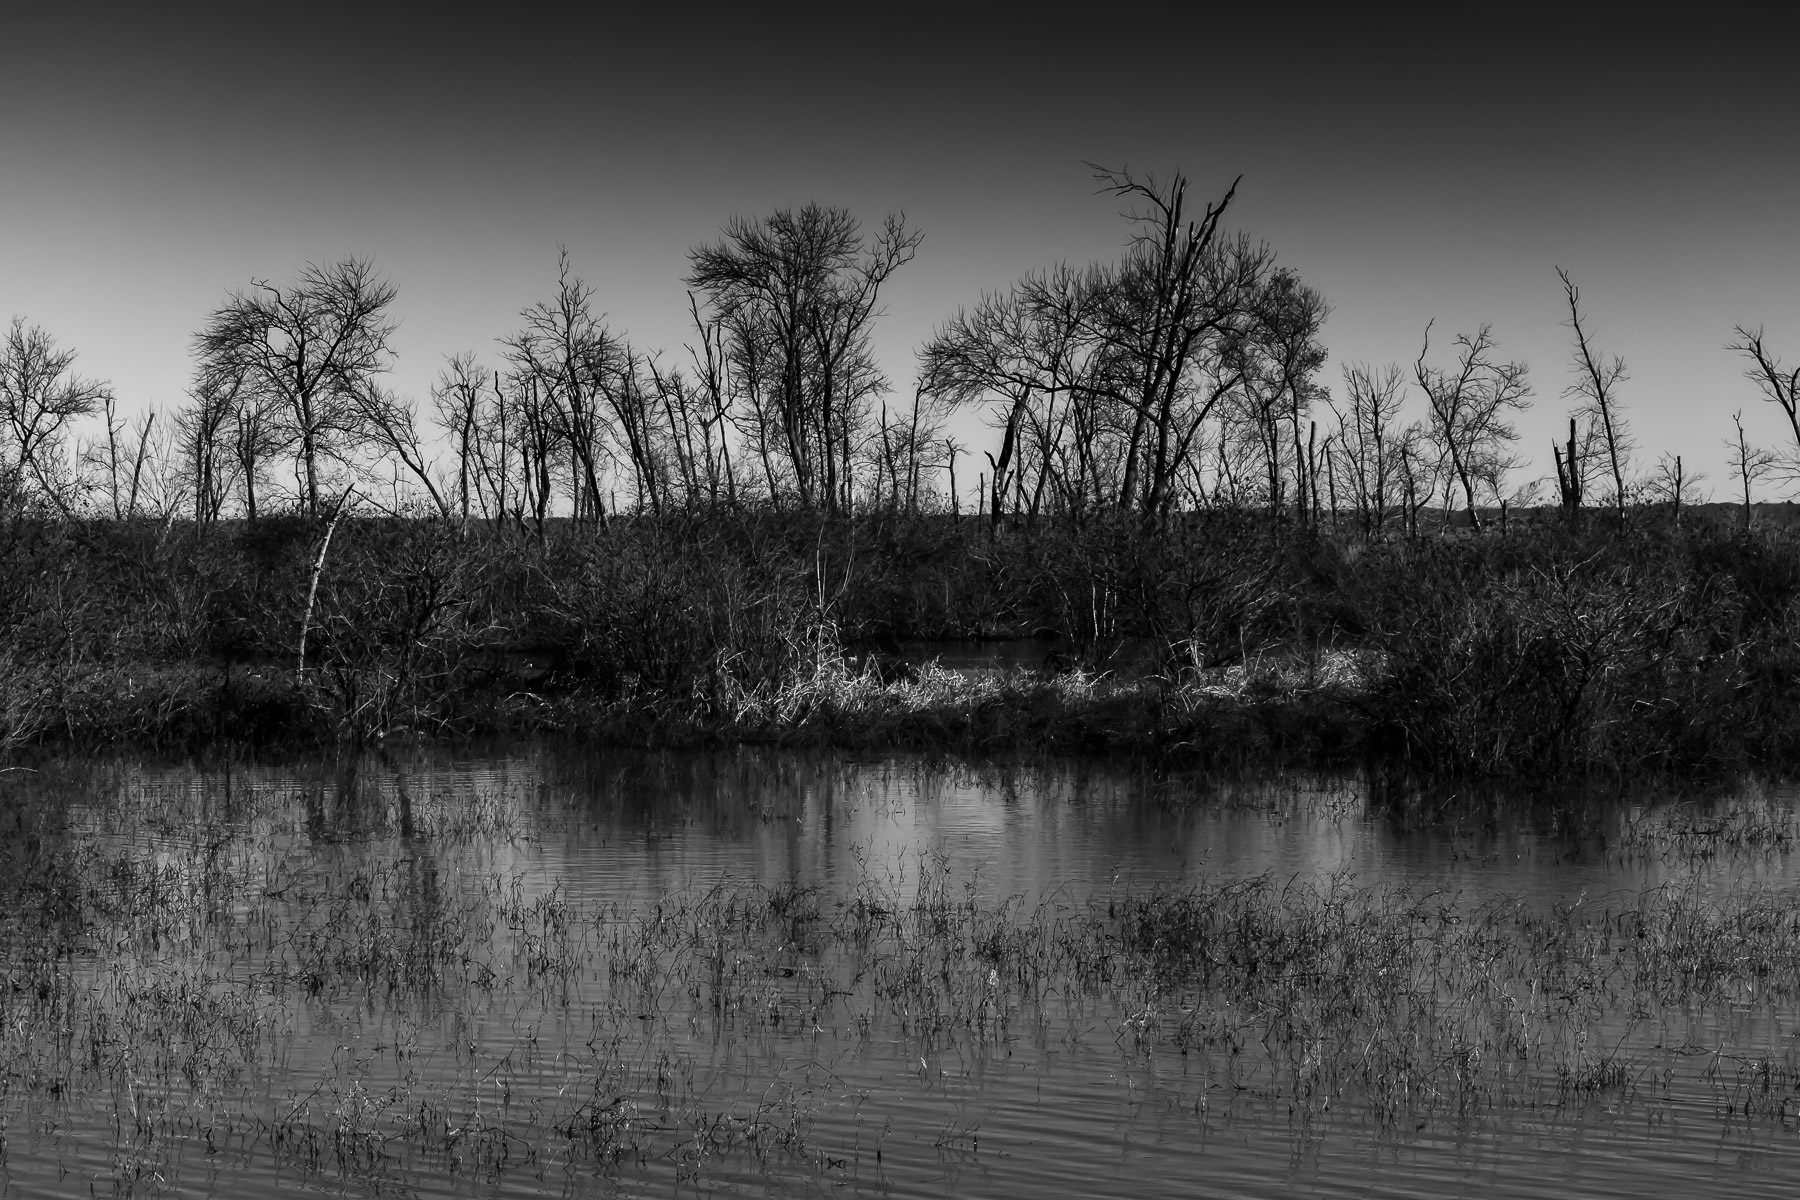 Trees along the shore of Harris Creek at the Hagerman National Wildlife Refuge, Texas.